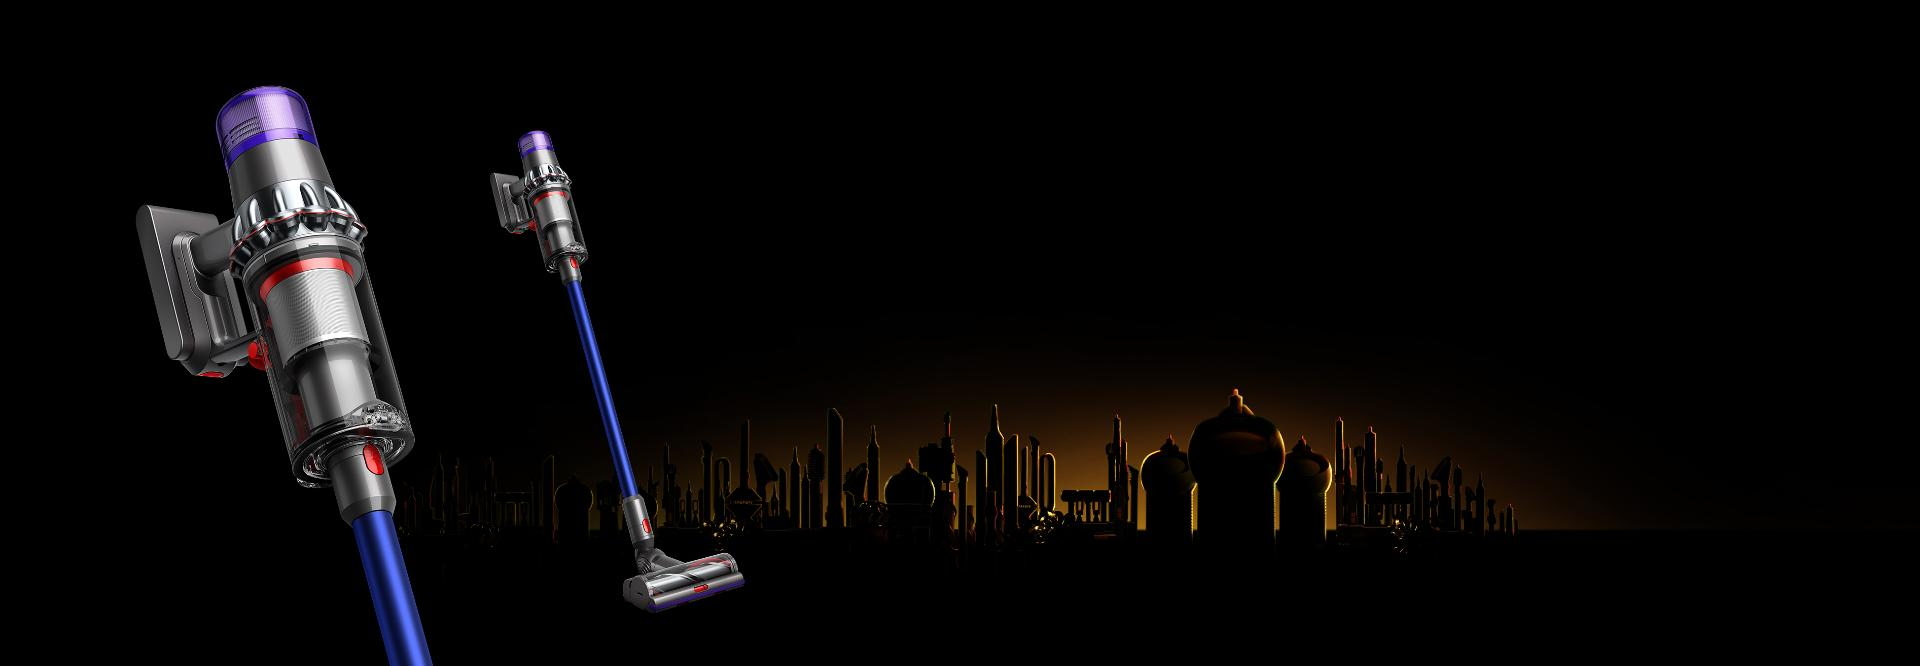 Ramadan background with Dyson V11 and V11 close up of bin